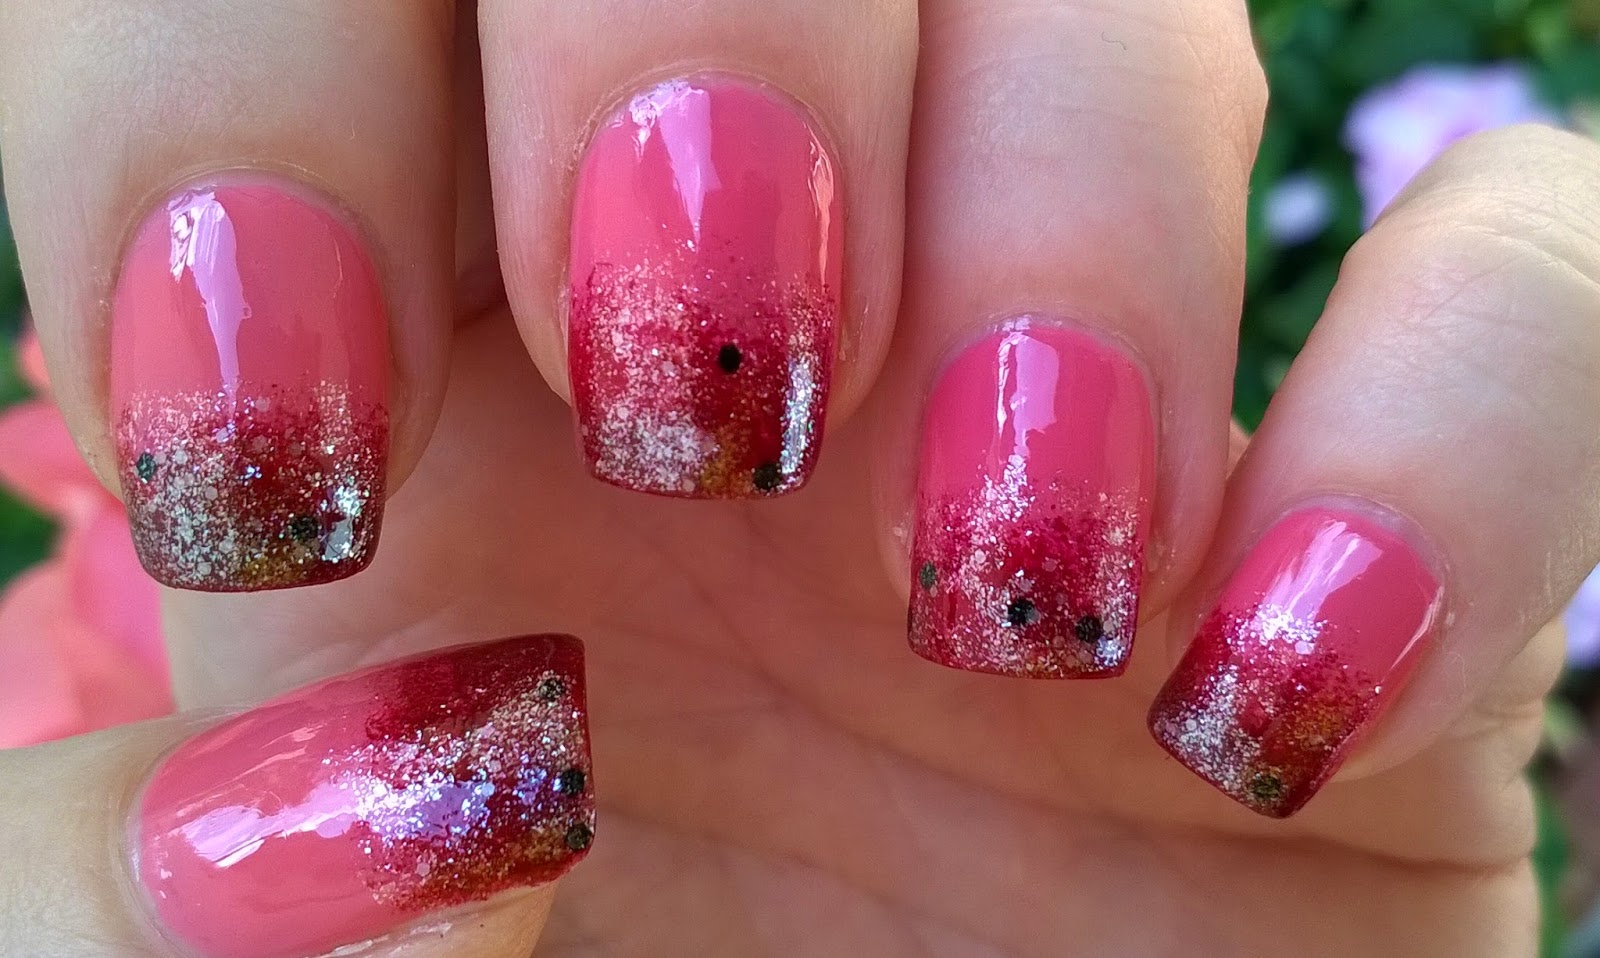 Life world women pink ombre nail art with glitter nail polish pink ombre nail art with glitter nail polish prinsesfo Gallery